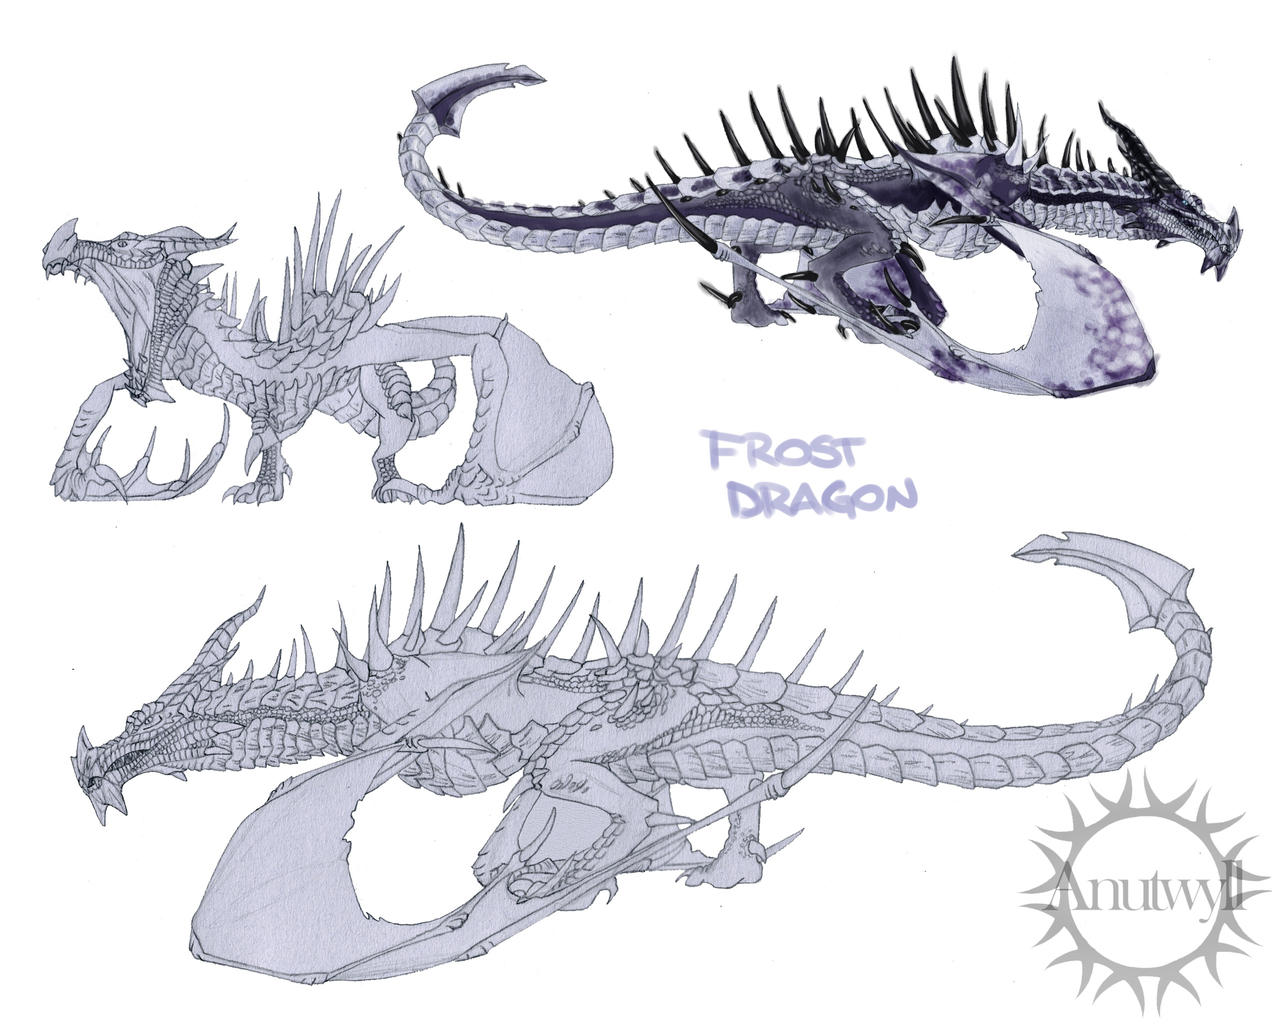 Frost dragon sketches by Anutwyll